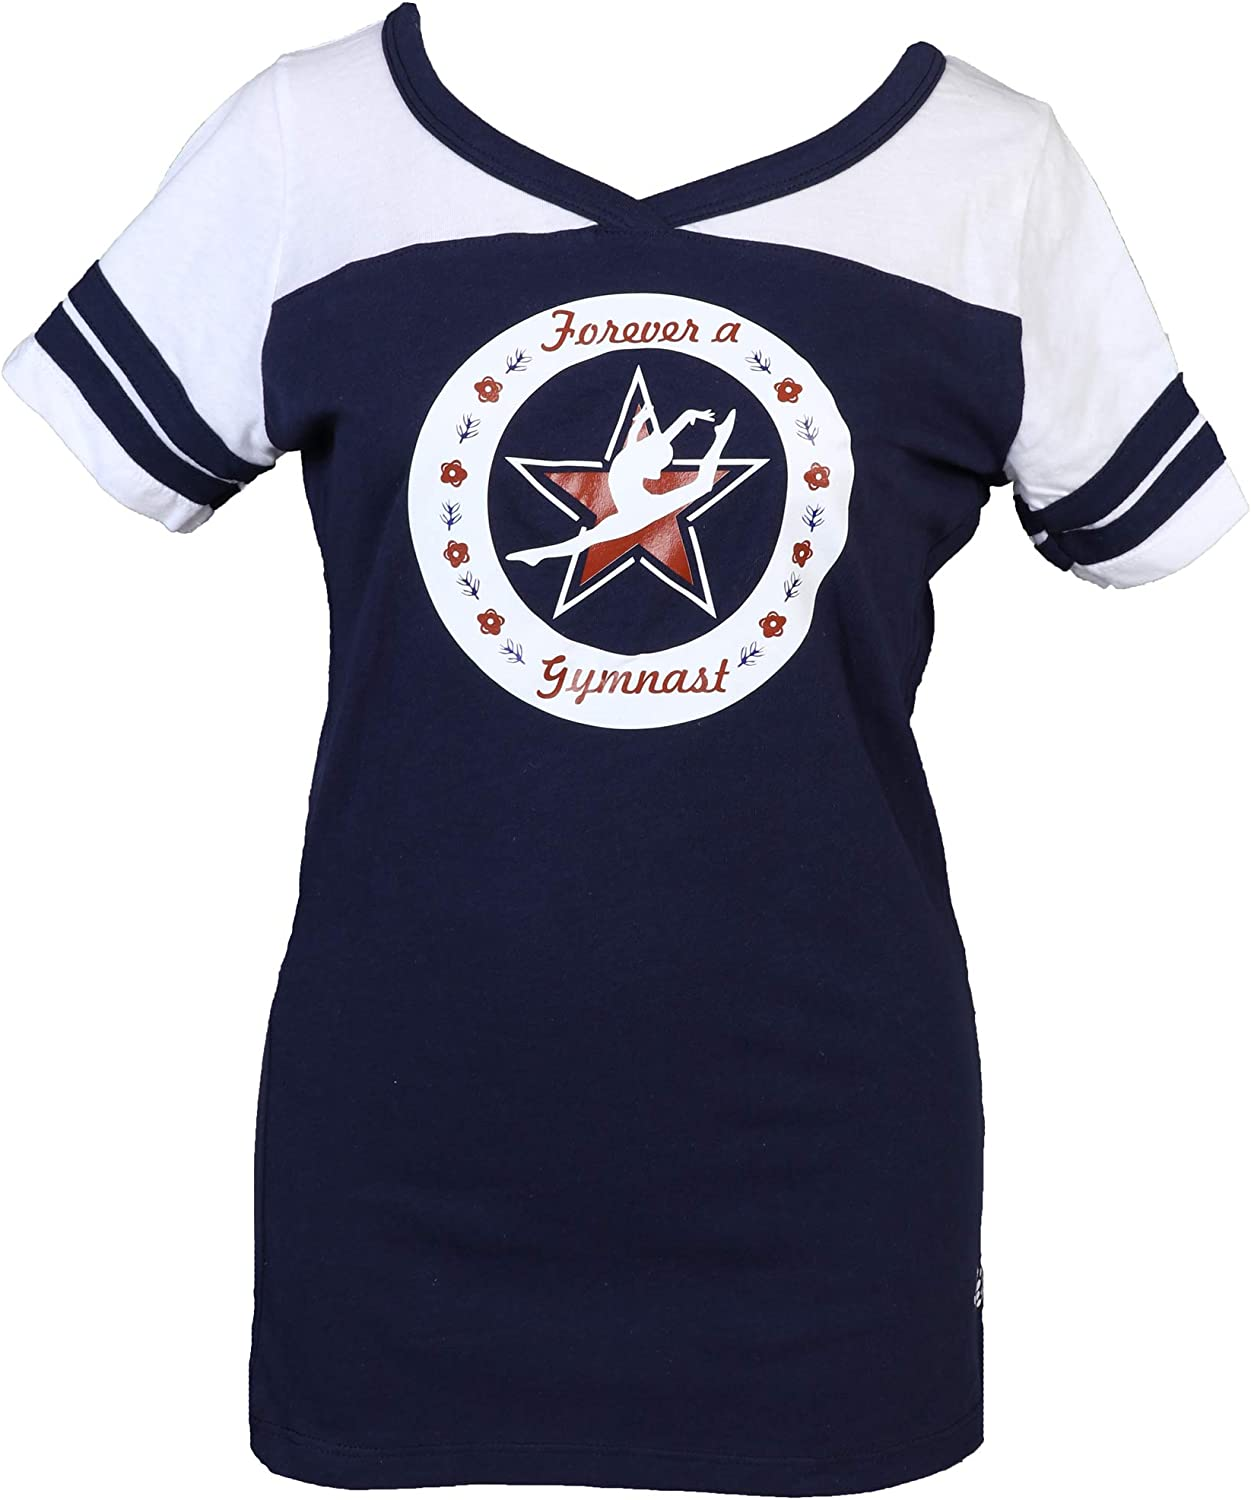 Snowflake Designs Forever a Gymnast T-Shirt White Finally Bargain popular brand Navy and